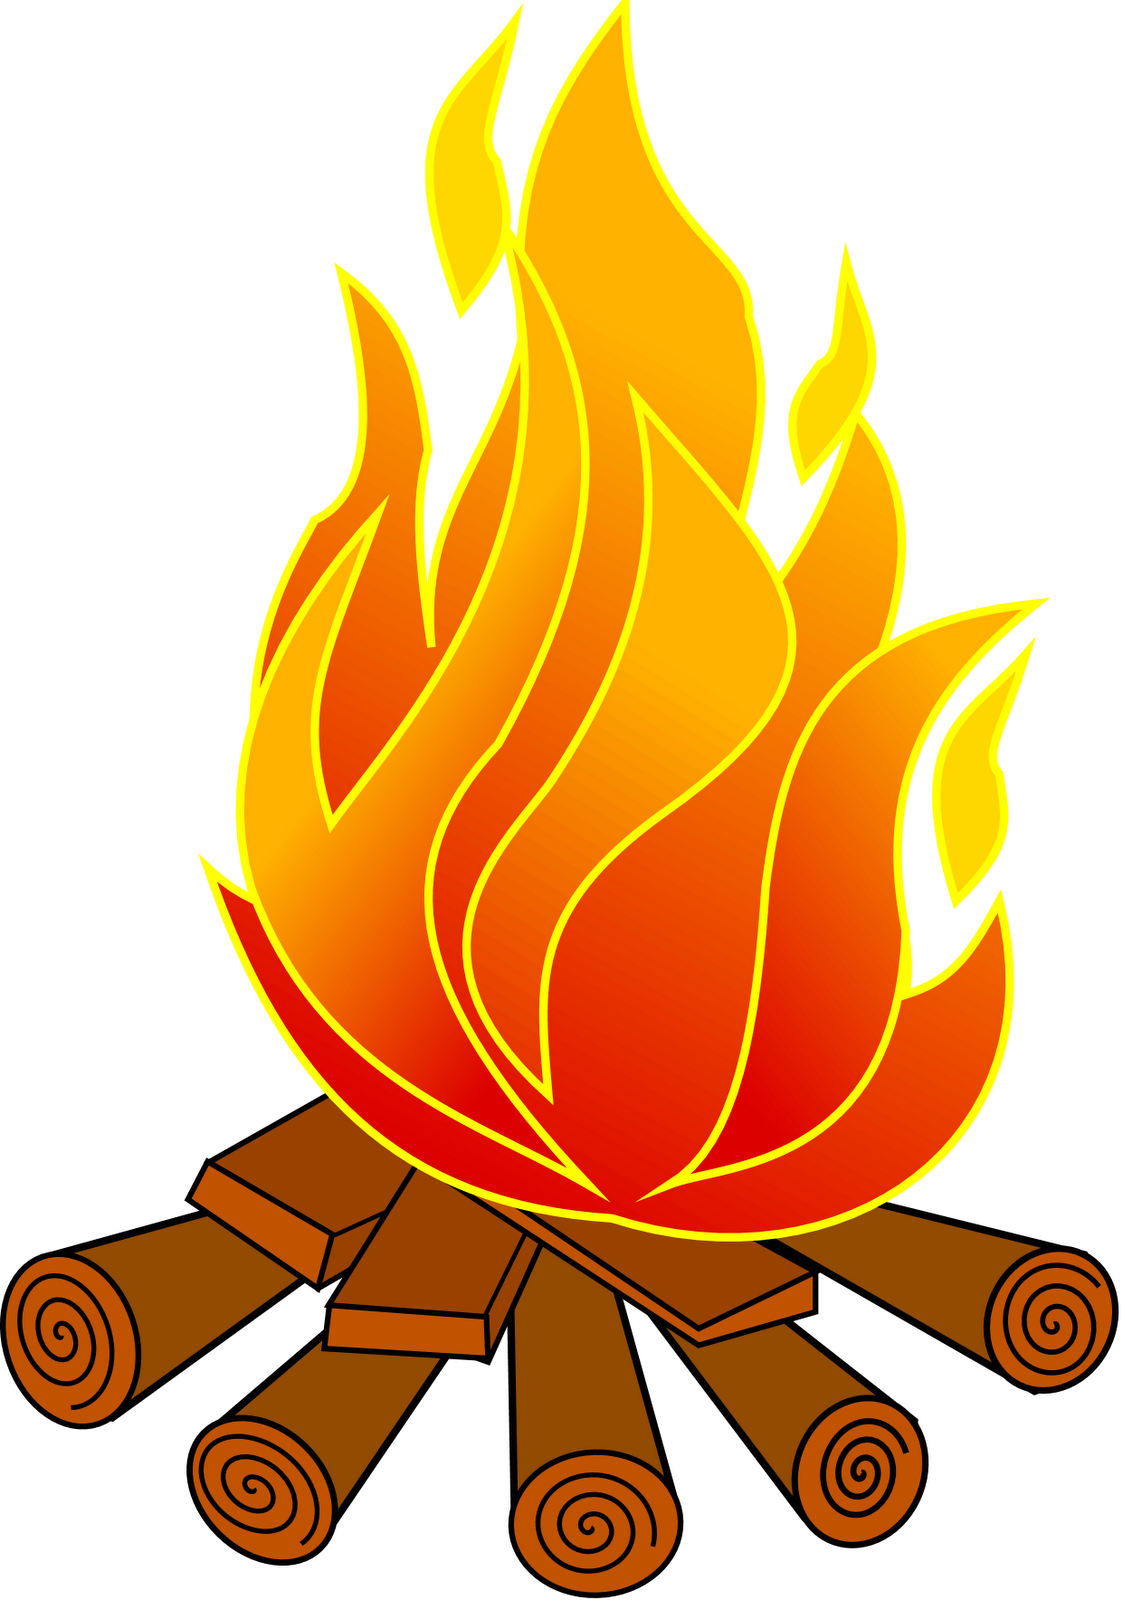 Burning flame clipart graphic black and white library Fire Pit Clipart | Free download best Fire Pit Clipart on ClipArtMag.com graphic black and white library